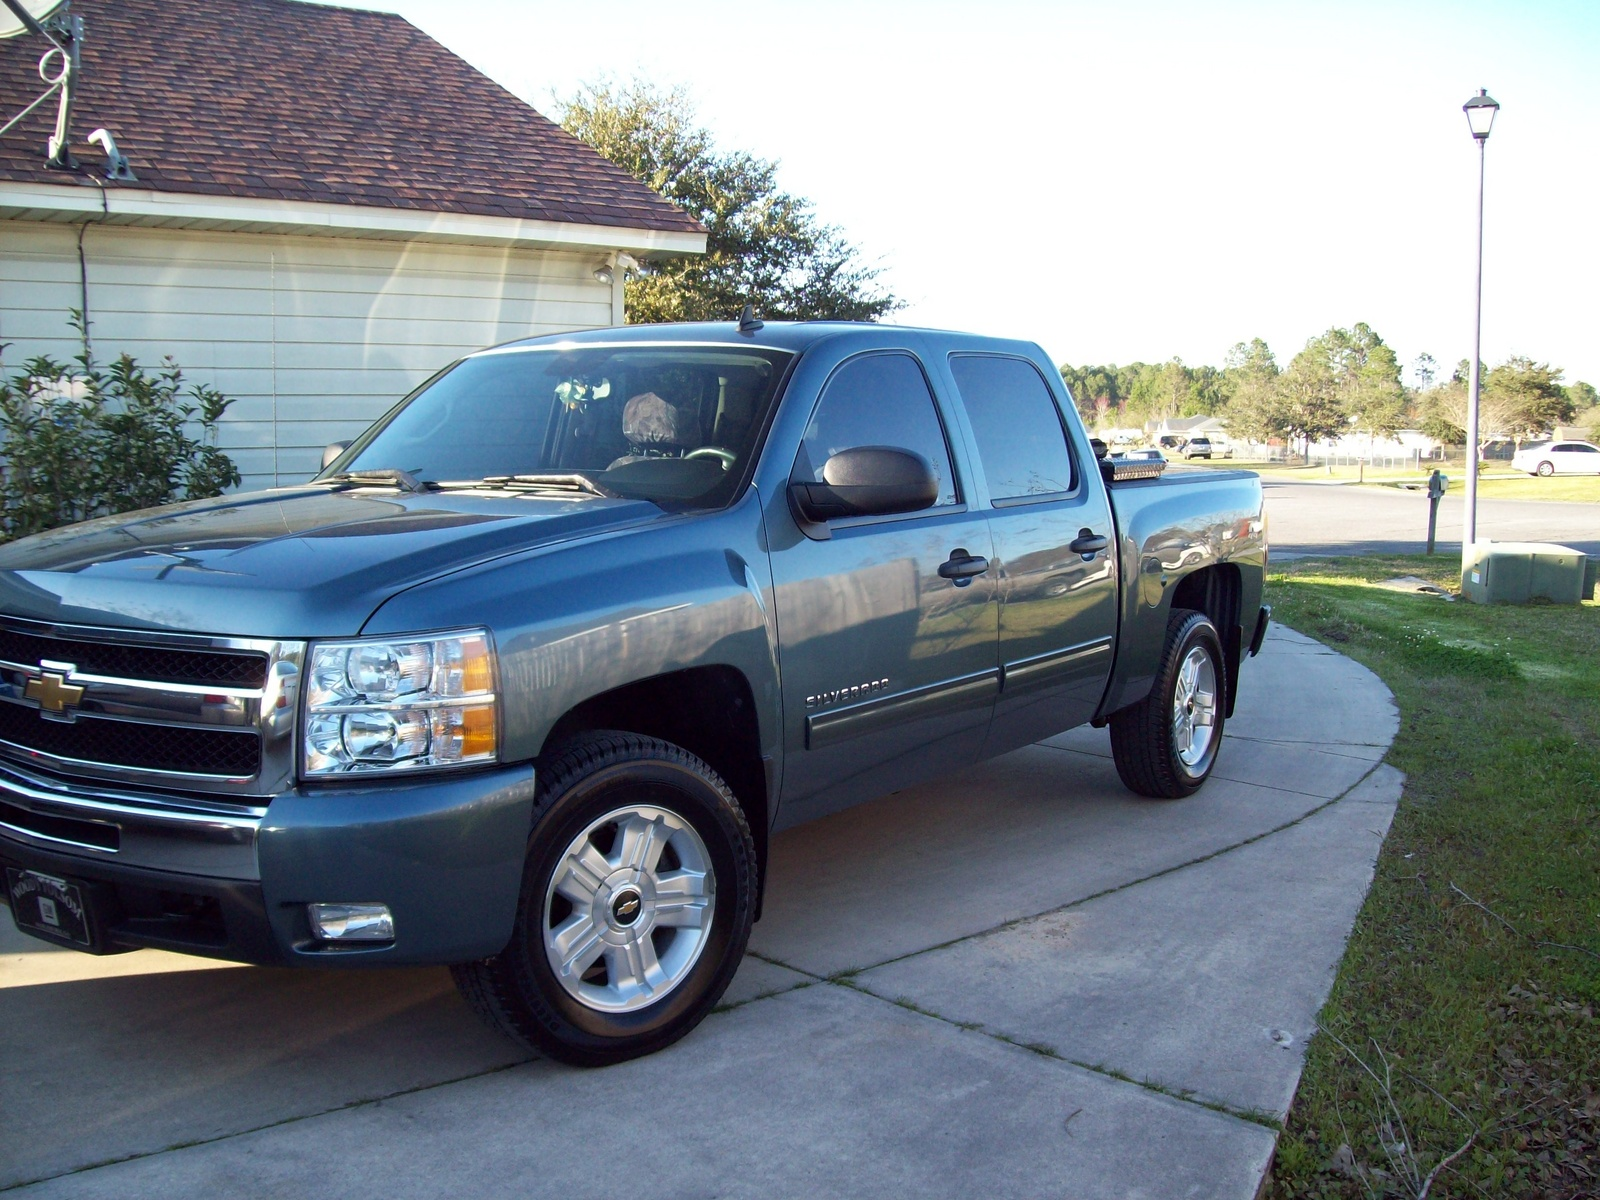 2011 chevrolet silverado 1500 pictures cargurus. Black Bedroom Furniture Sets. Home Design Ideas